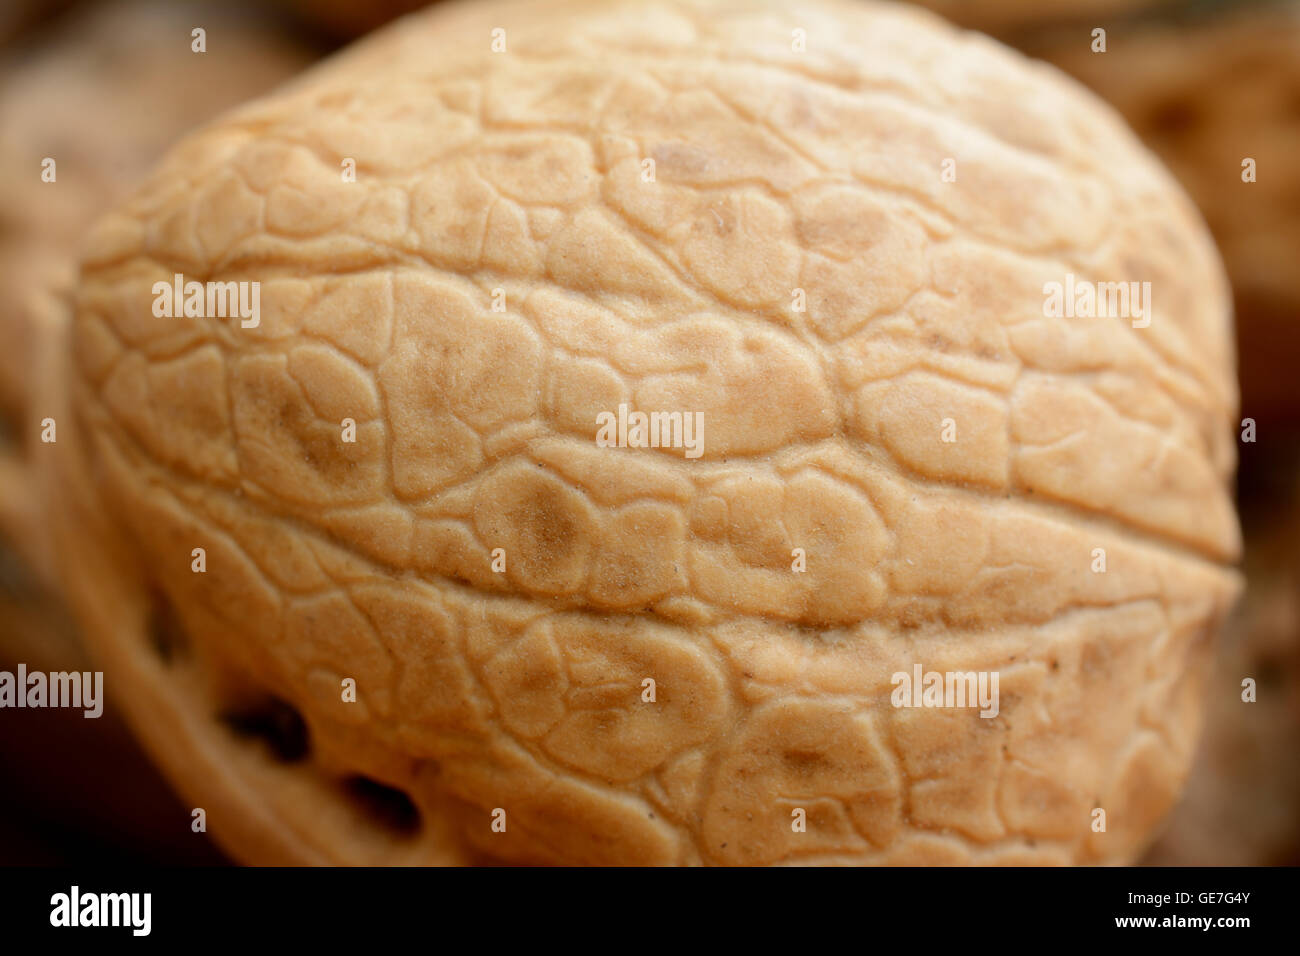 Brown walnut closeup. Shallow depth of field. - Stock Image